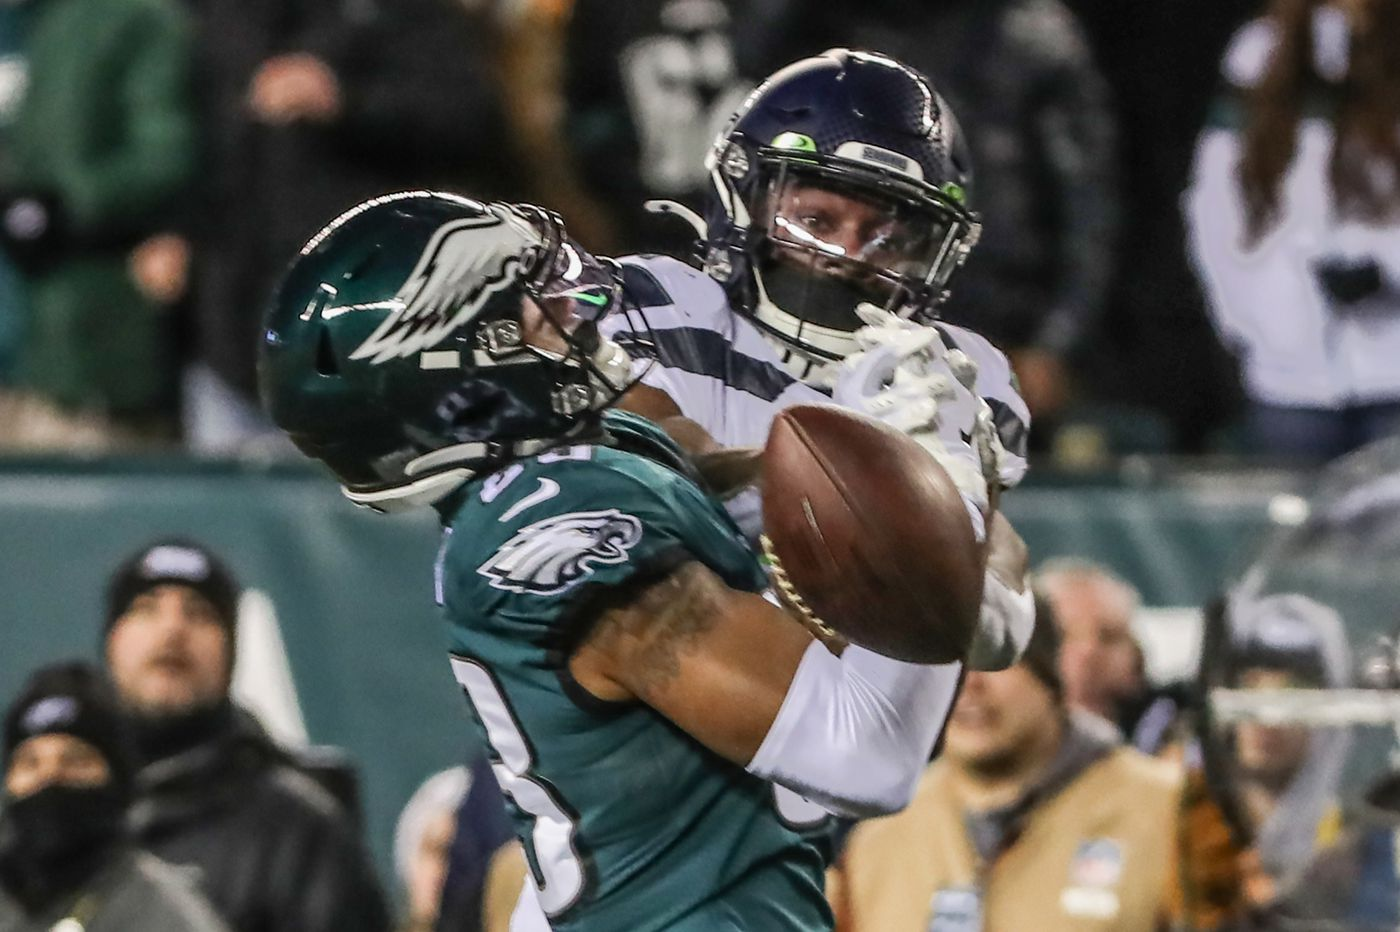 Eagles need to start getting it right at wide receiver. After blockbuster day, trade and free-agent options are slim. | David Murphy